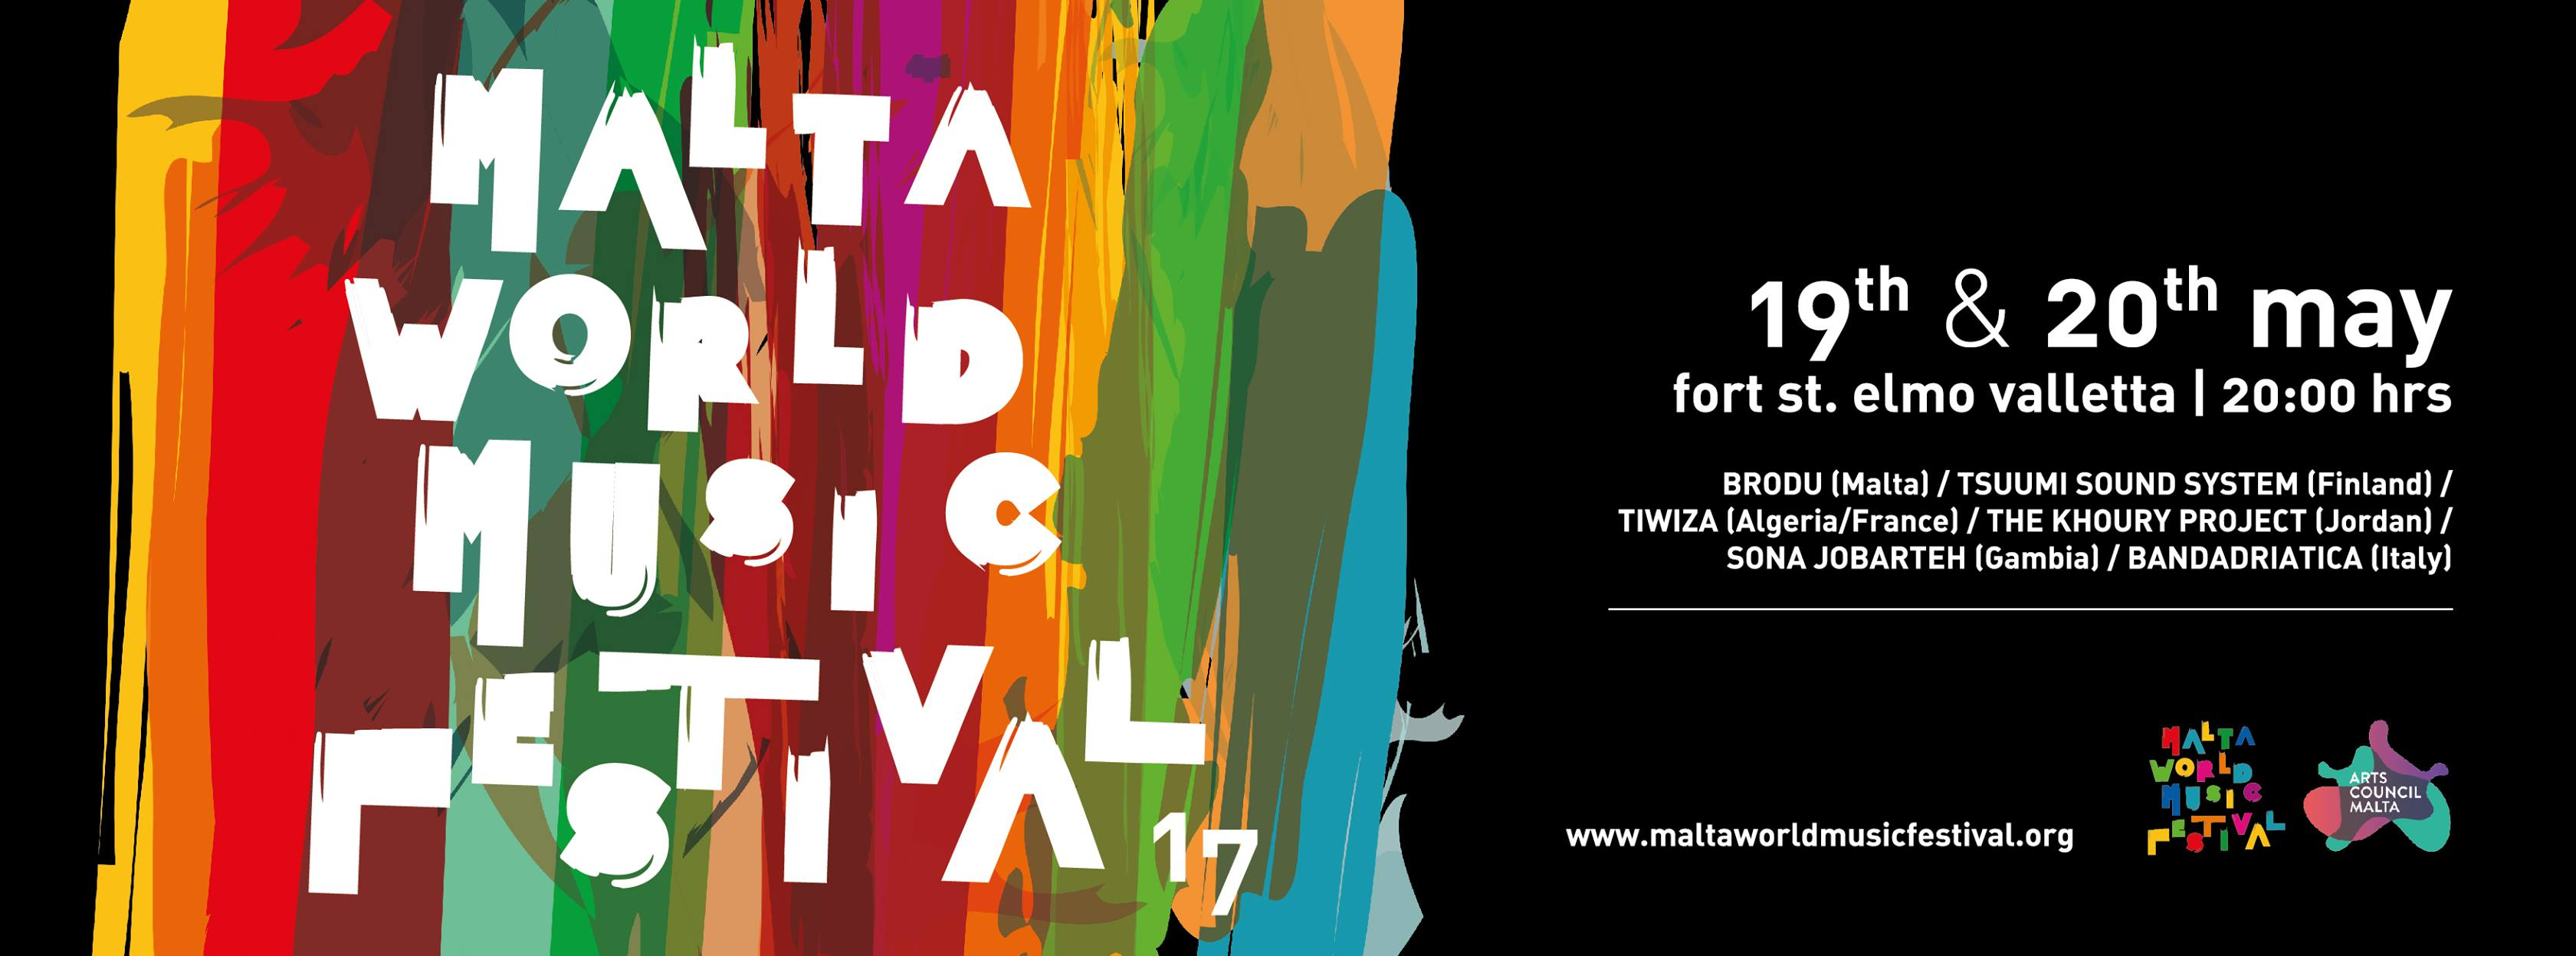 Malta World Music Festival, 2017